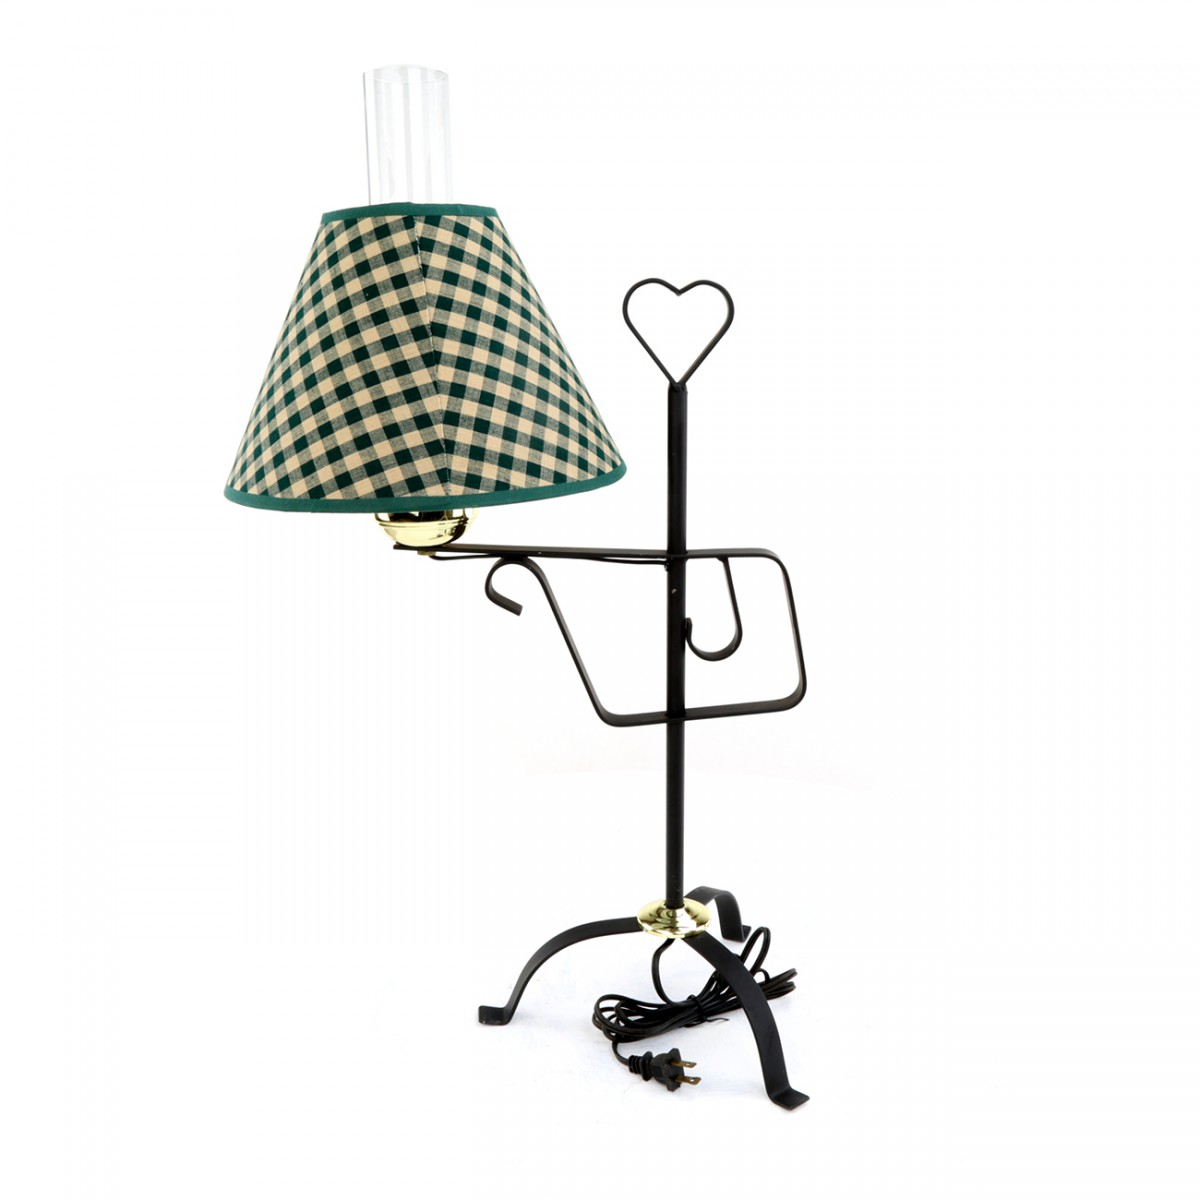 Wrought Iron Table Lamp Country Heart Design With Fabric